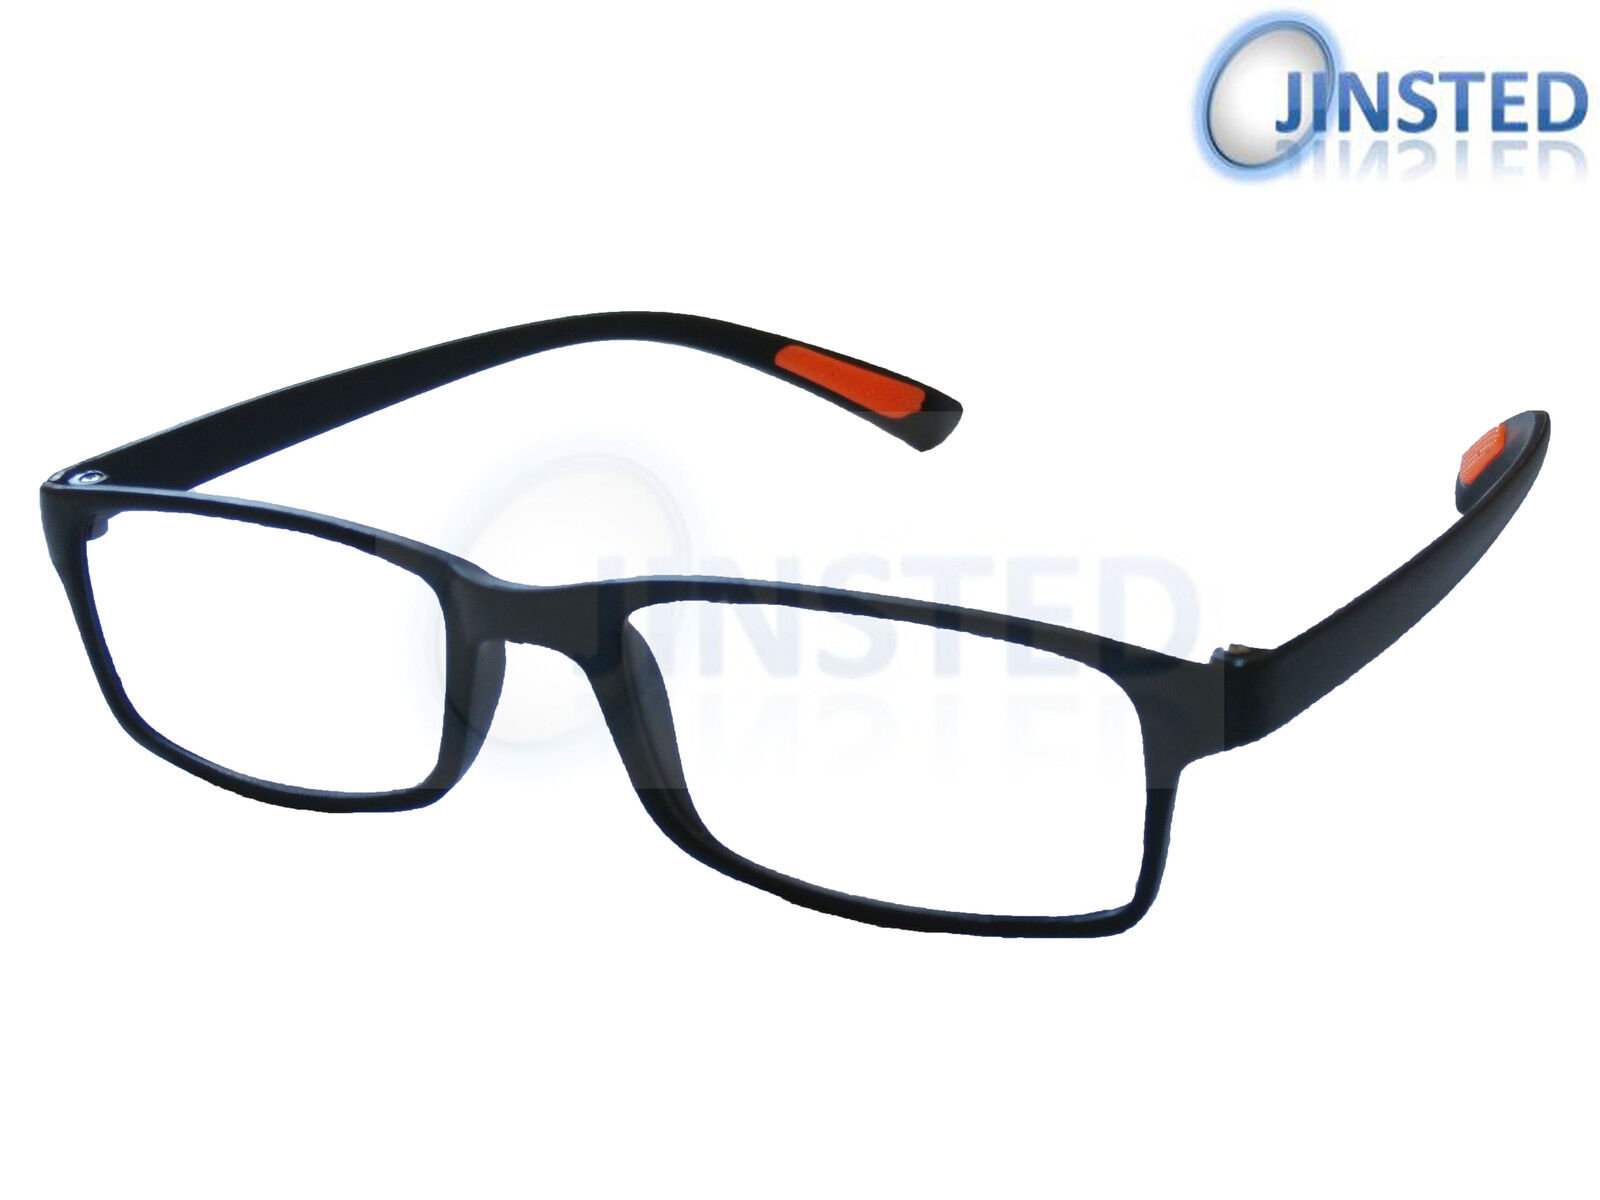 Black Lightweight Stylish Reading Glasses Specs Spectacles Unisex Readers RG007